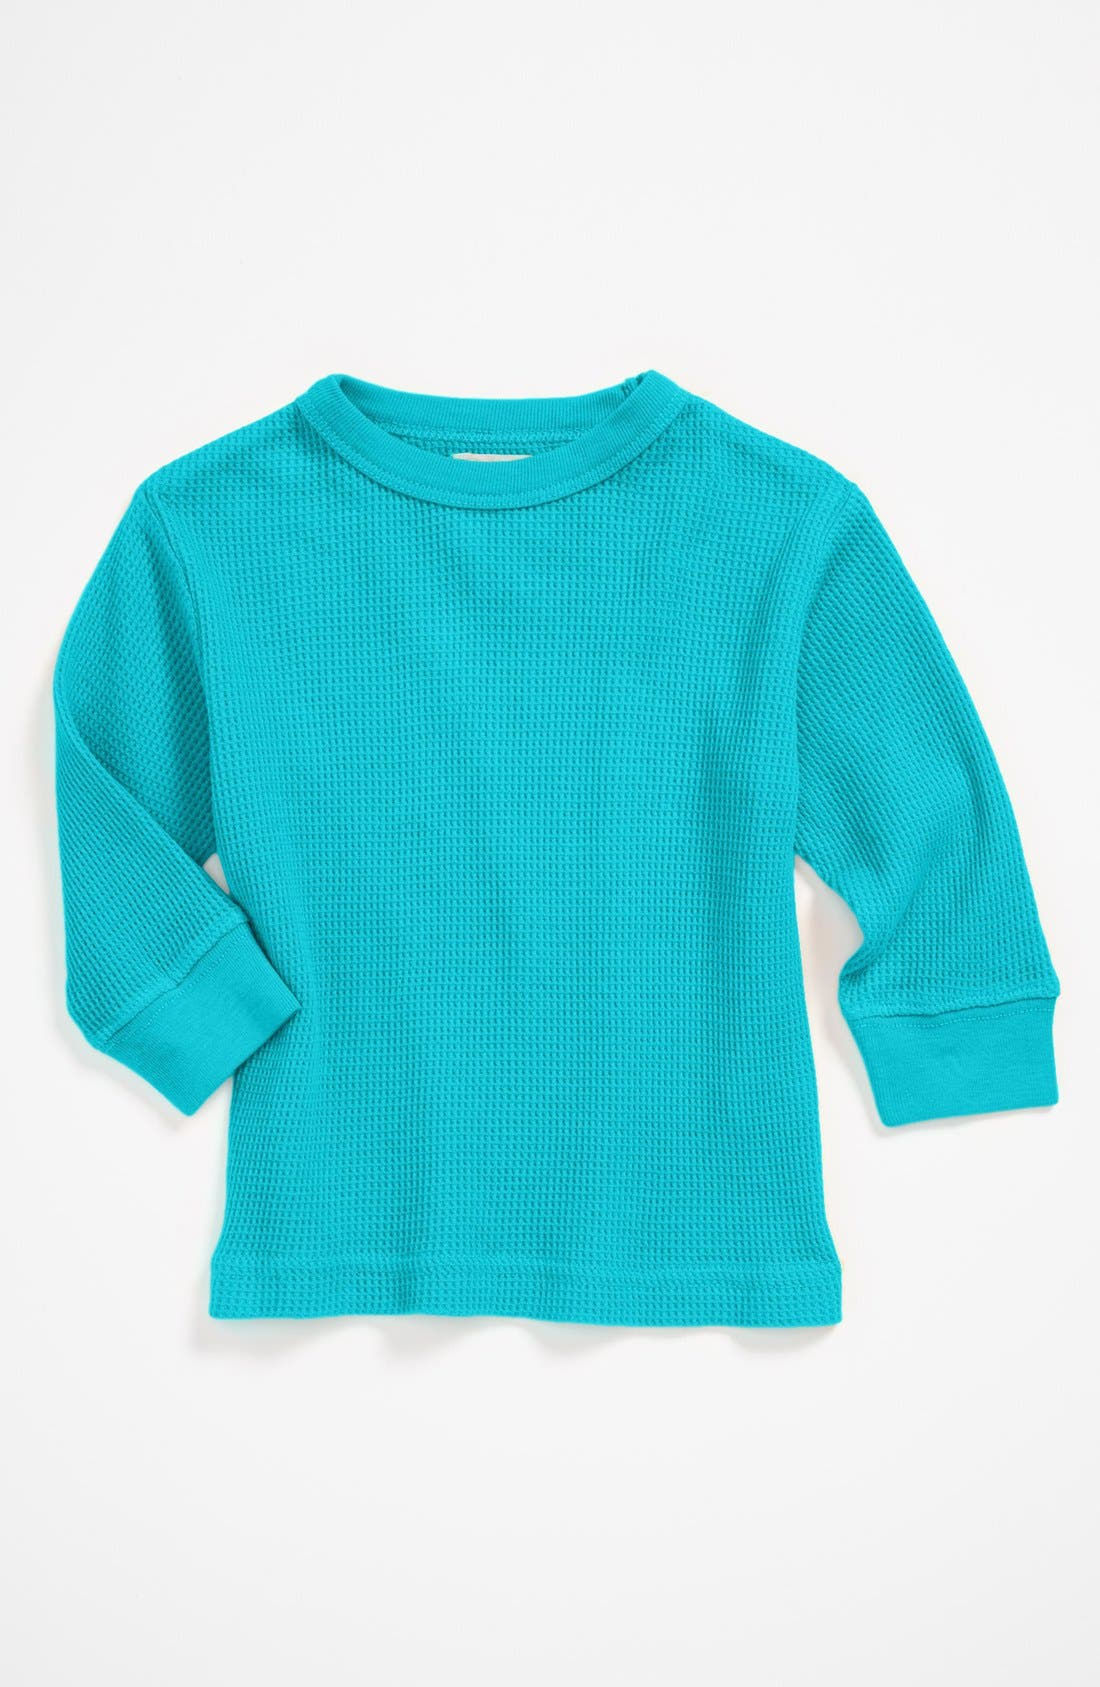 Main Image - Peek Layering Thermal Shirt (Baby Boys)